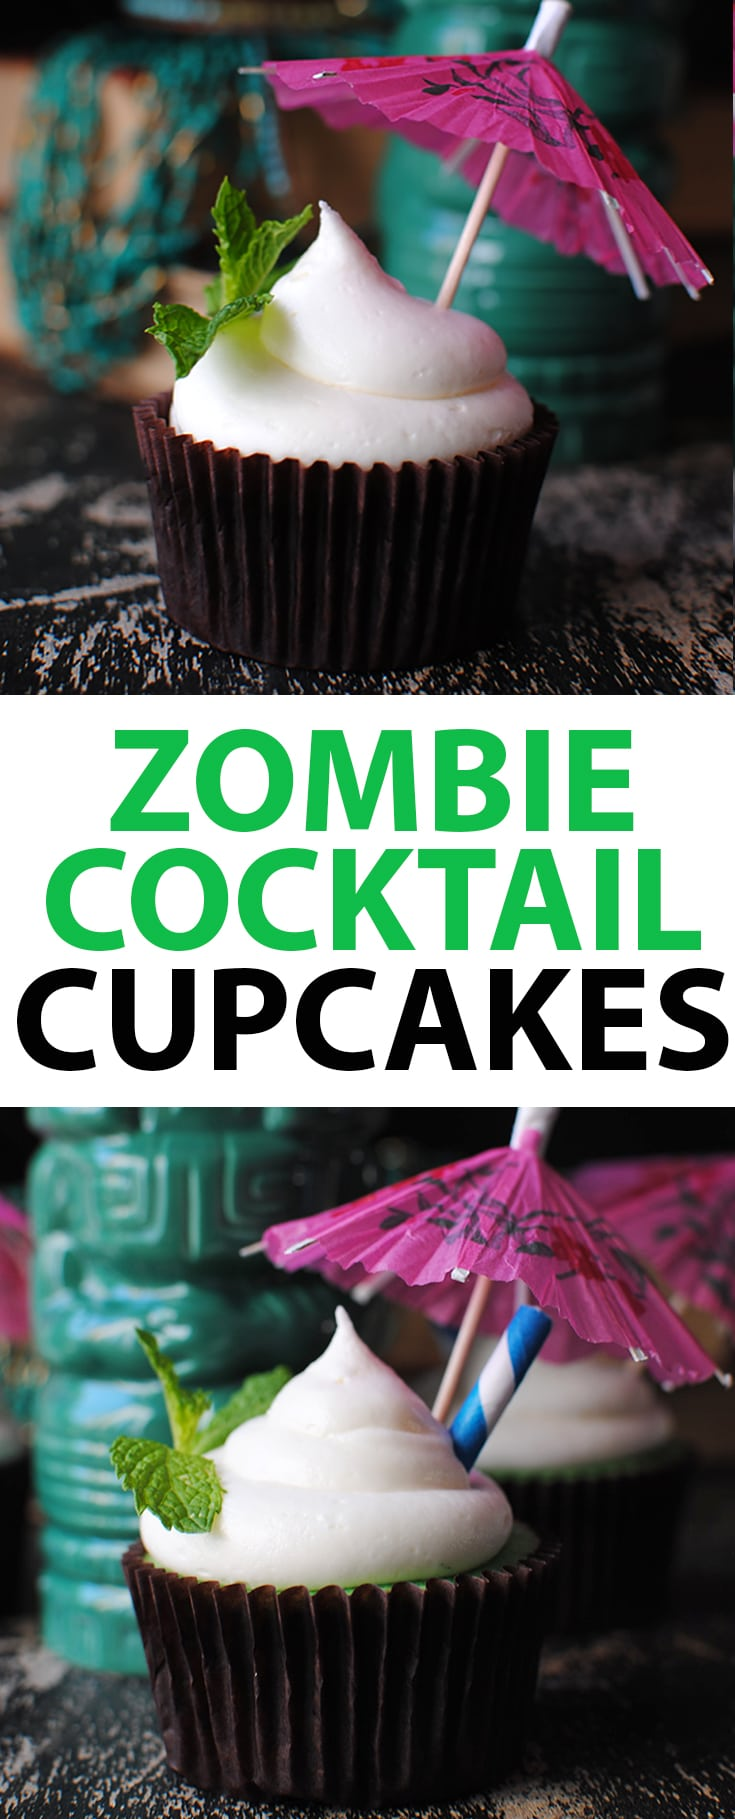 How to Make a Zombie Cocktail Cupcake